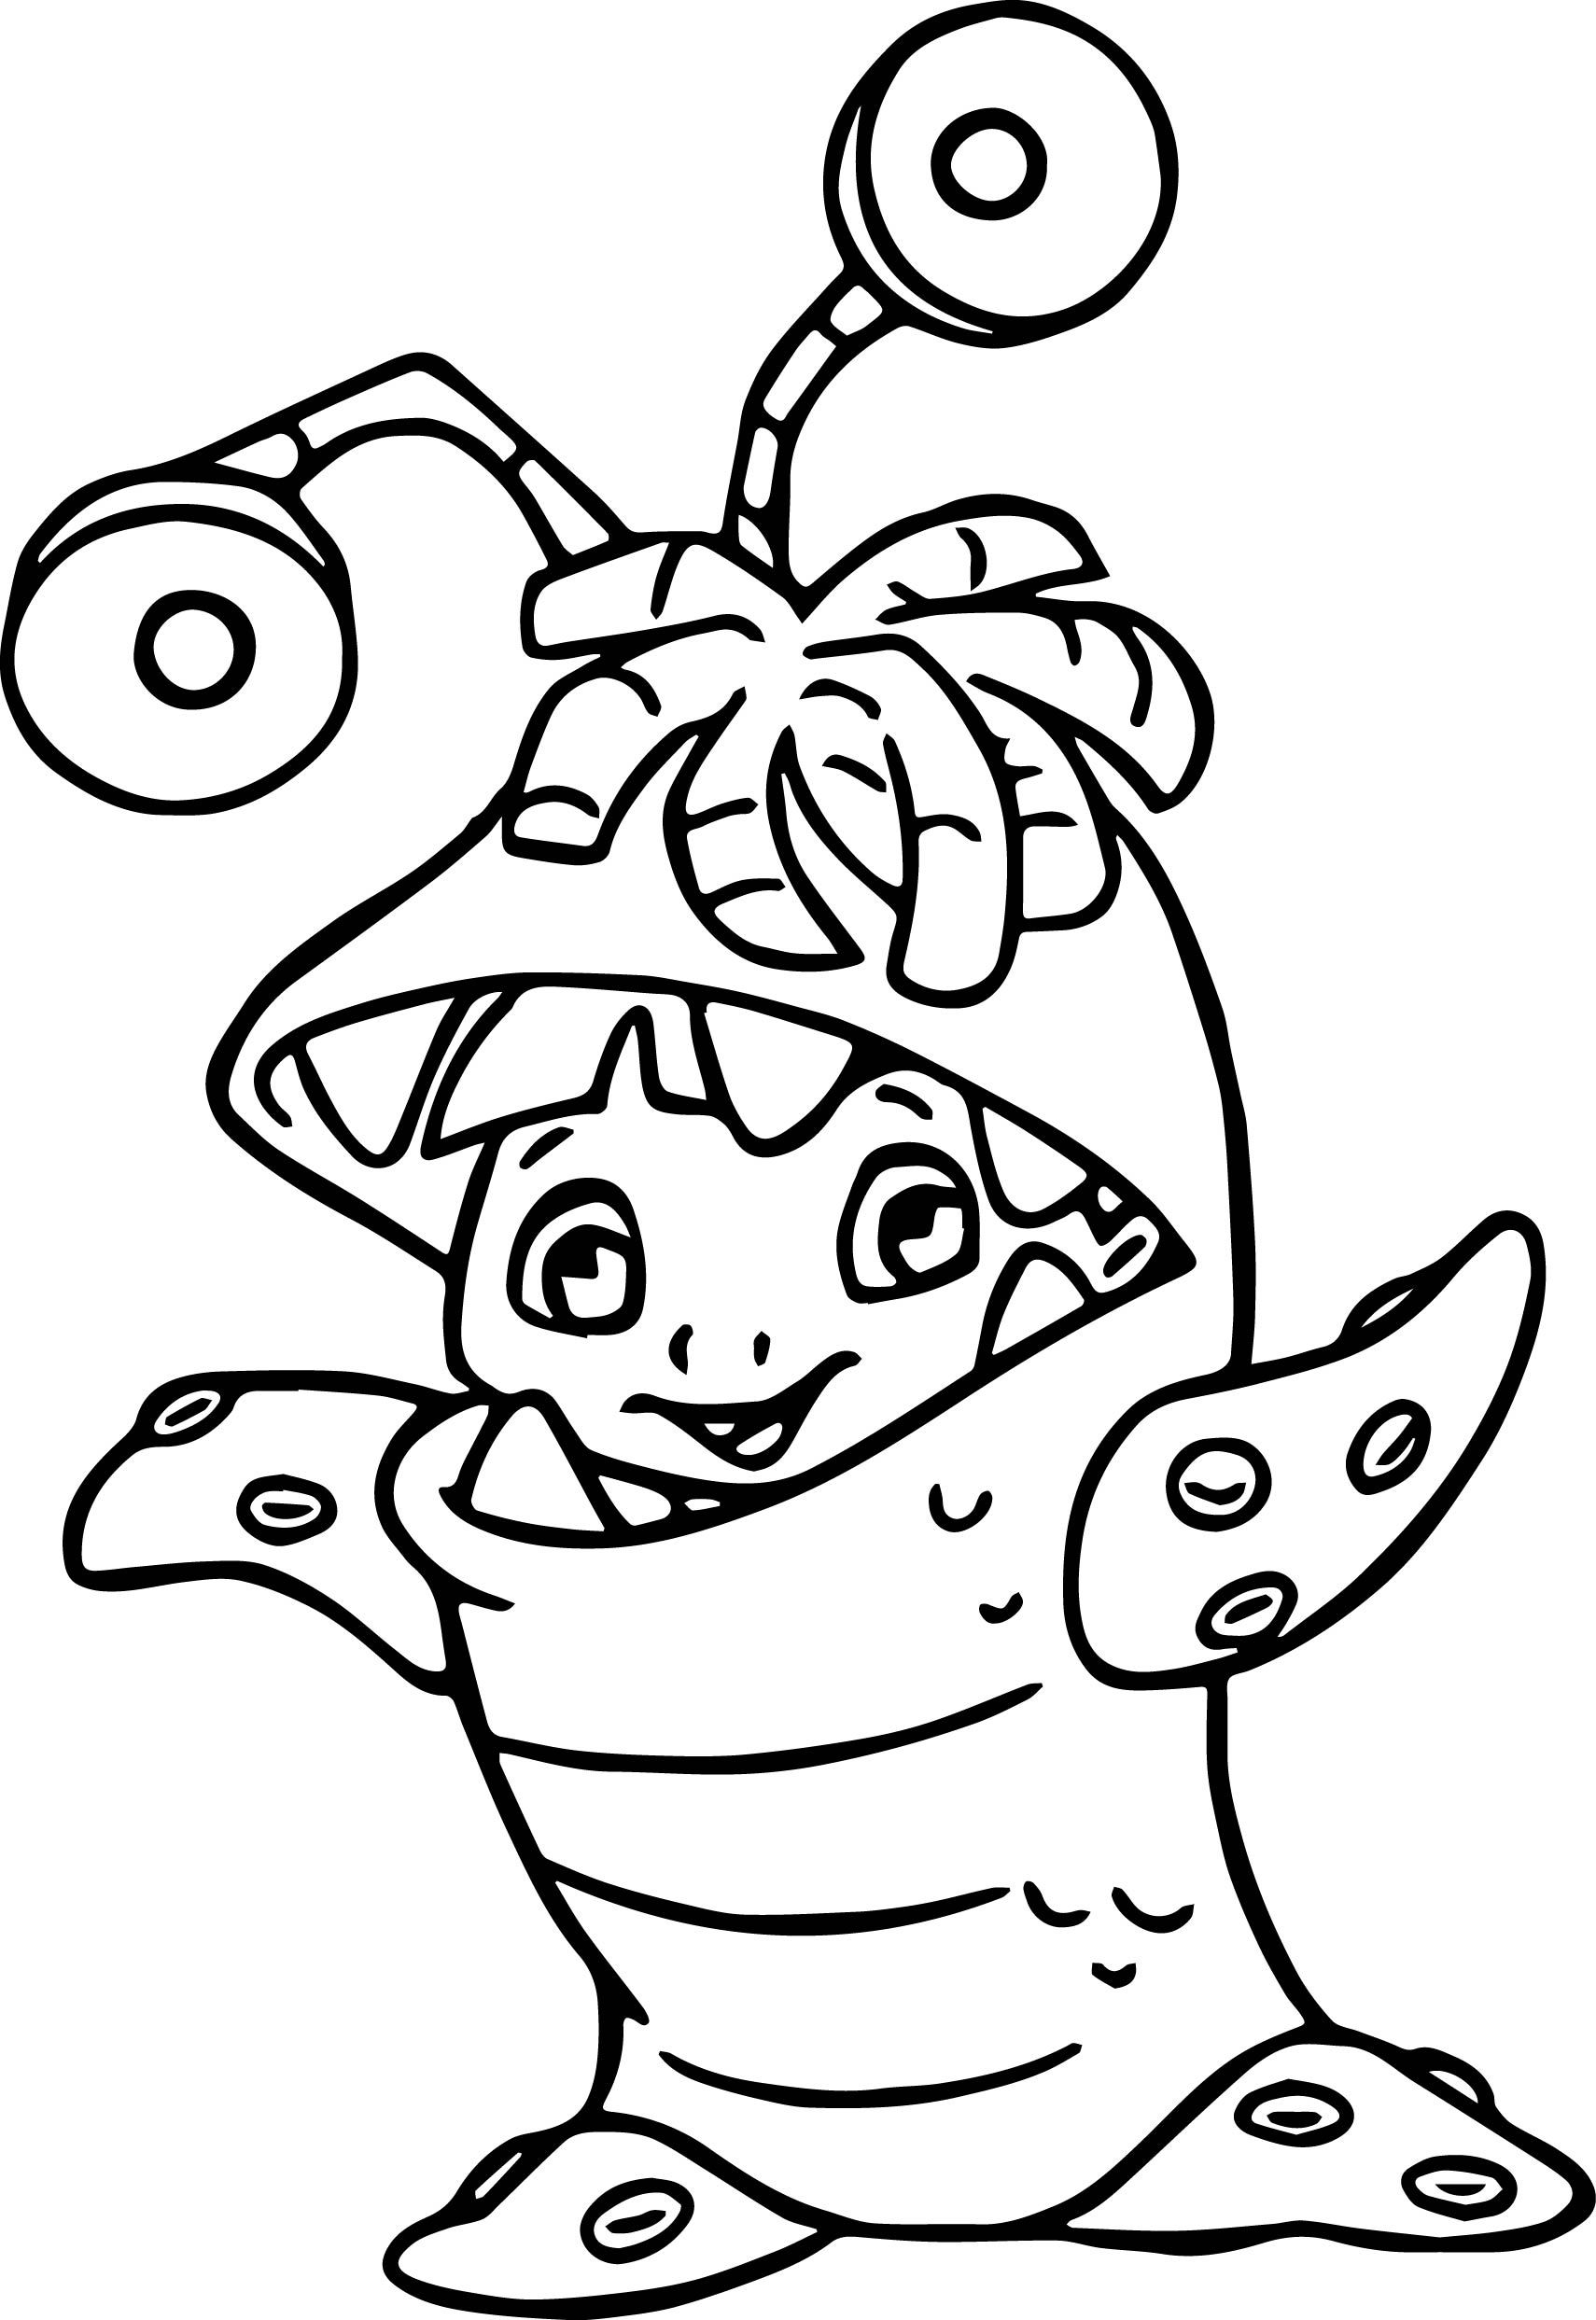 Disney Monsters Inc Coloring Pages | wecoloringpage | Pinterest